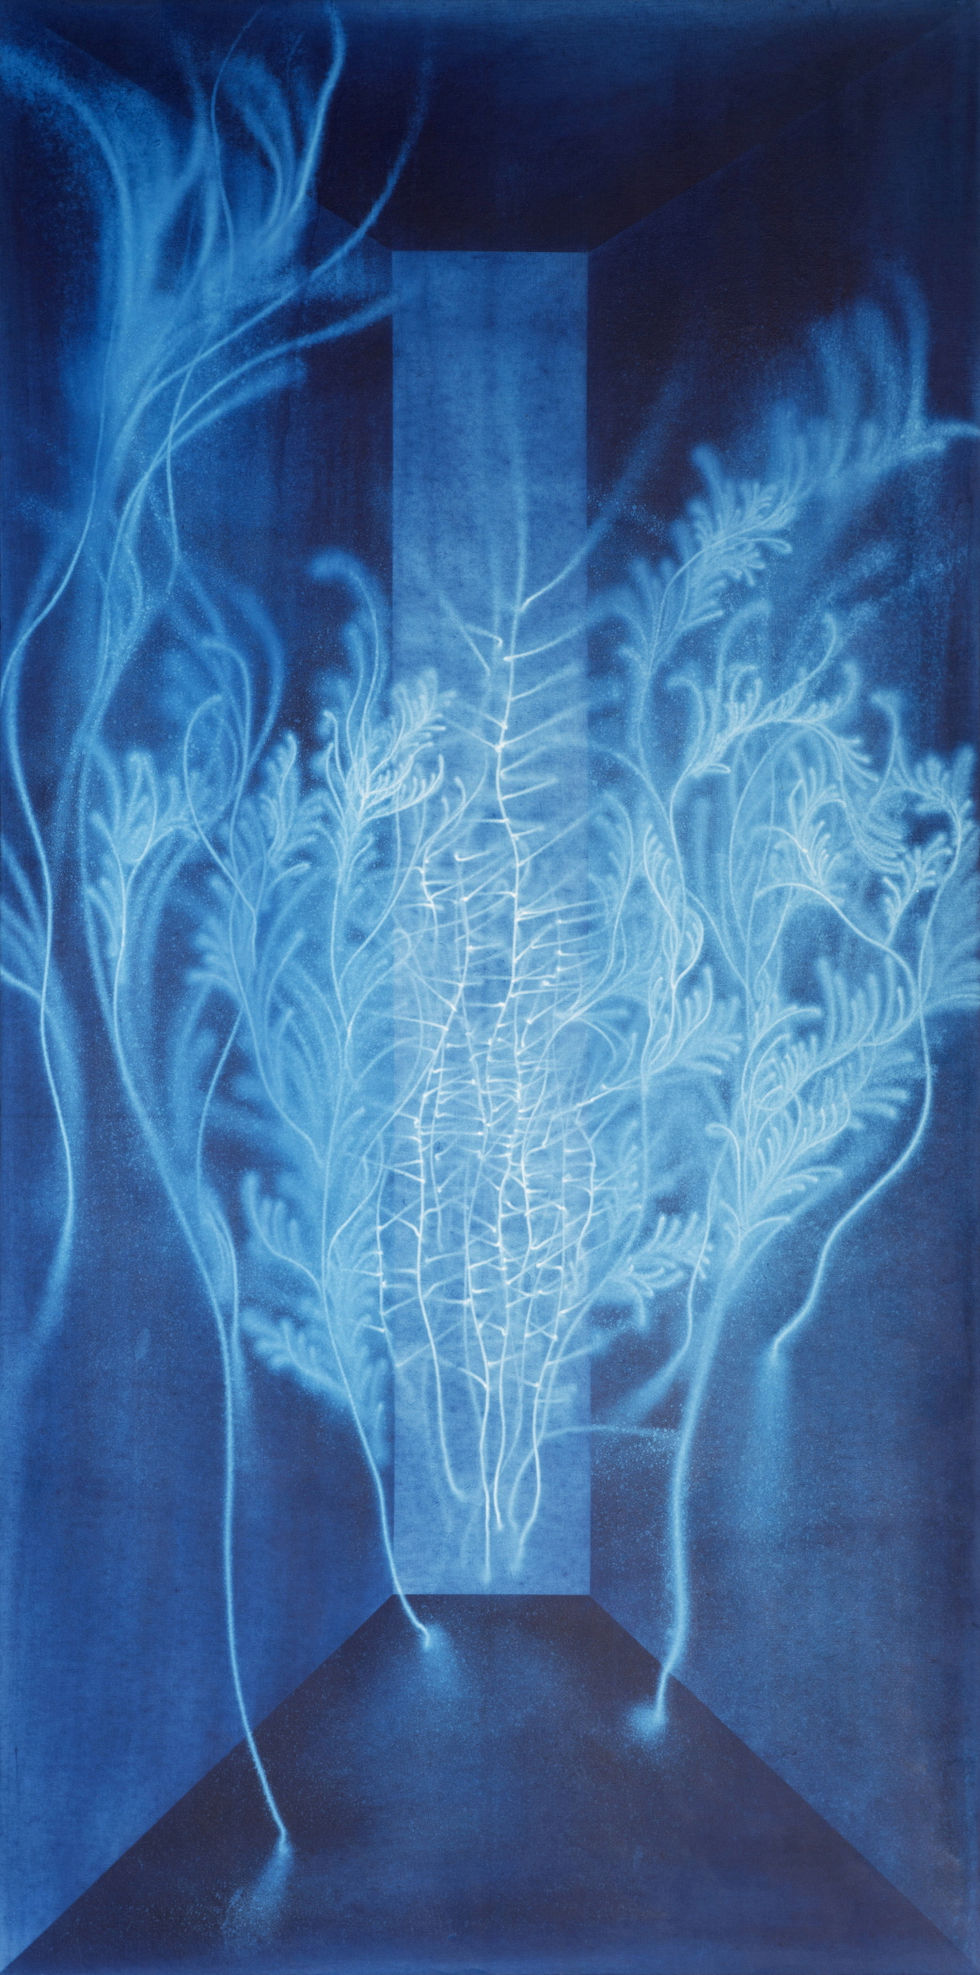 Waterscape_물풀 1505_1, 200x100cmx2pcs, Traditional pigment, water-drawing on mulberry paper, 2013